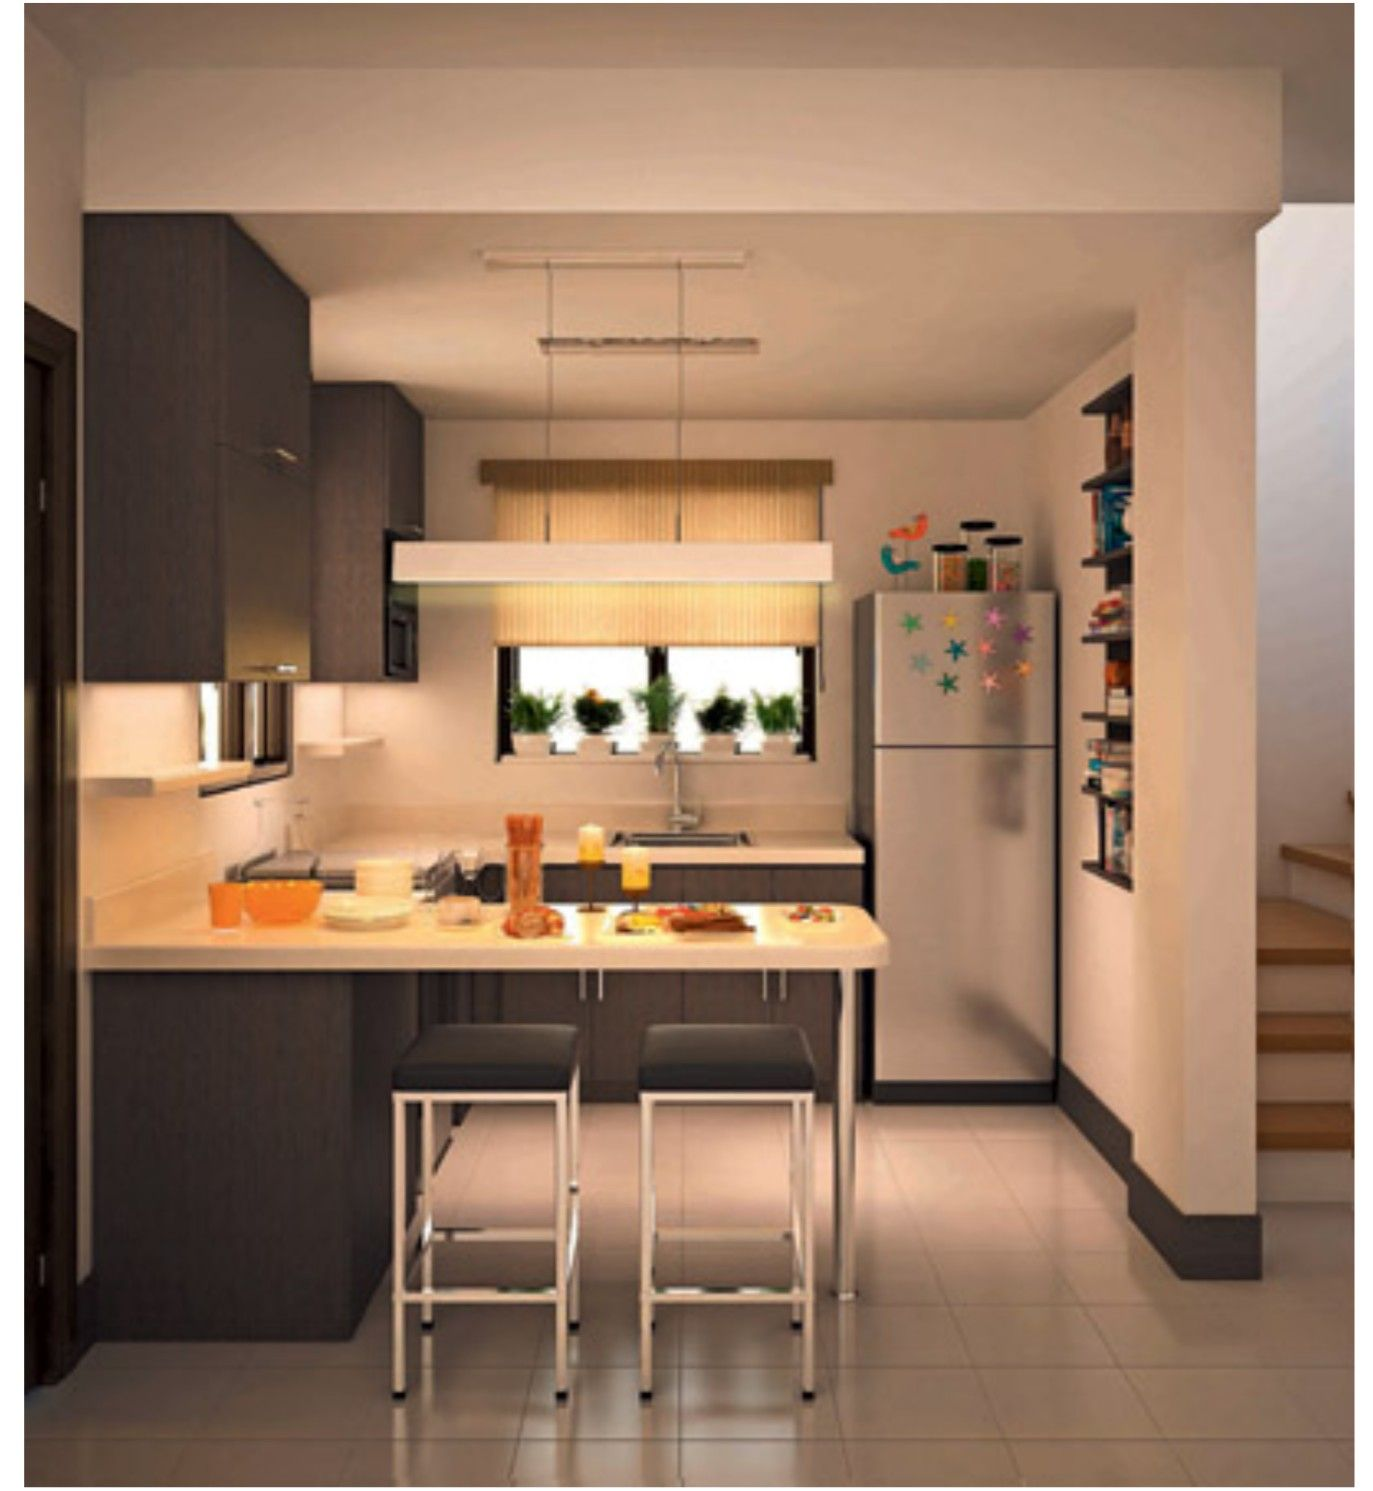 5 Tips On Build Small Kitchen Remodeling Ideas On A Budget: Pin By RJ On Condo Ideas Etc